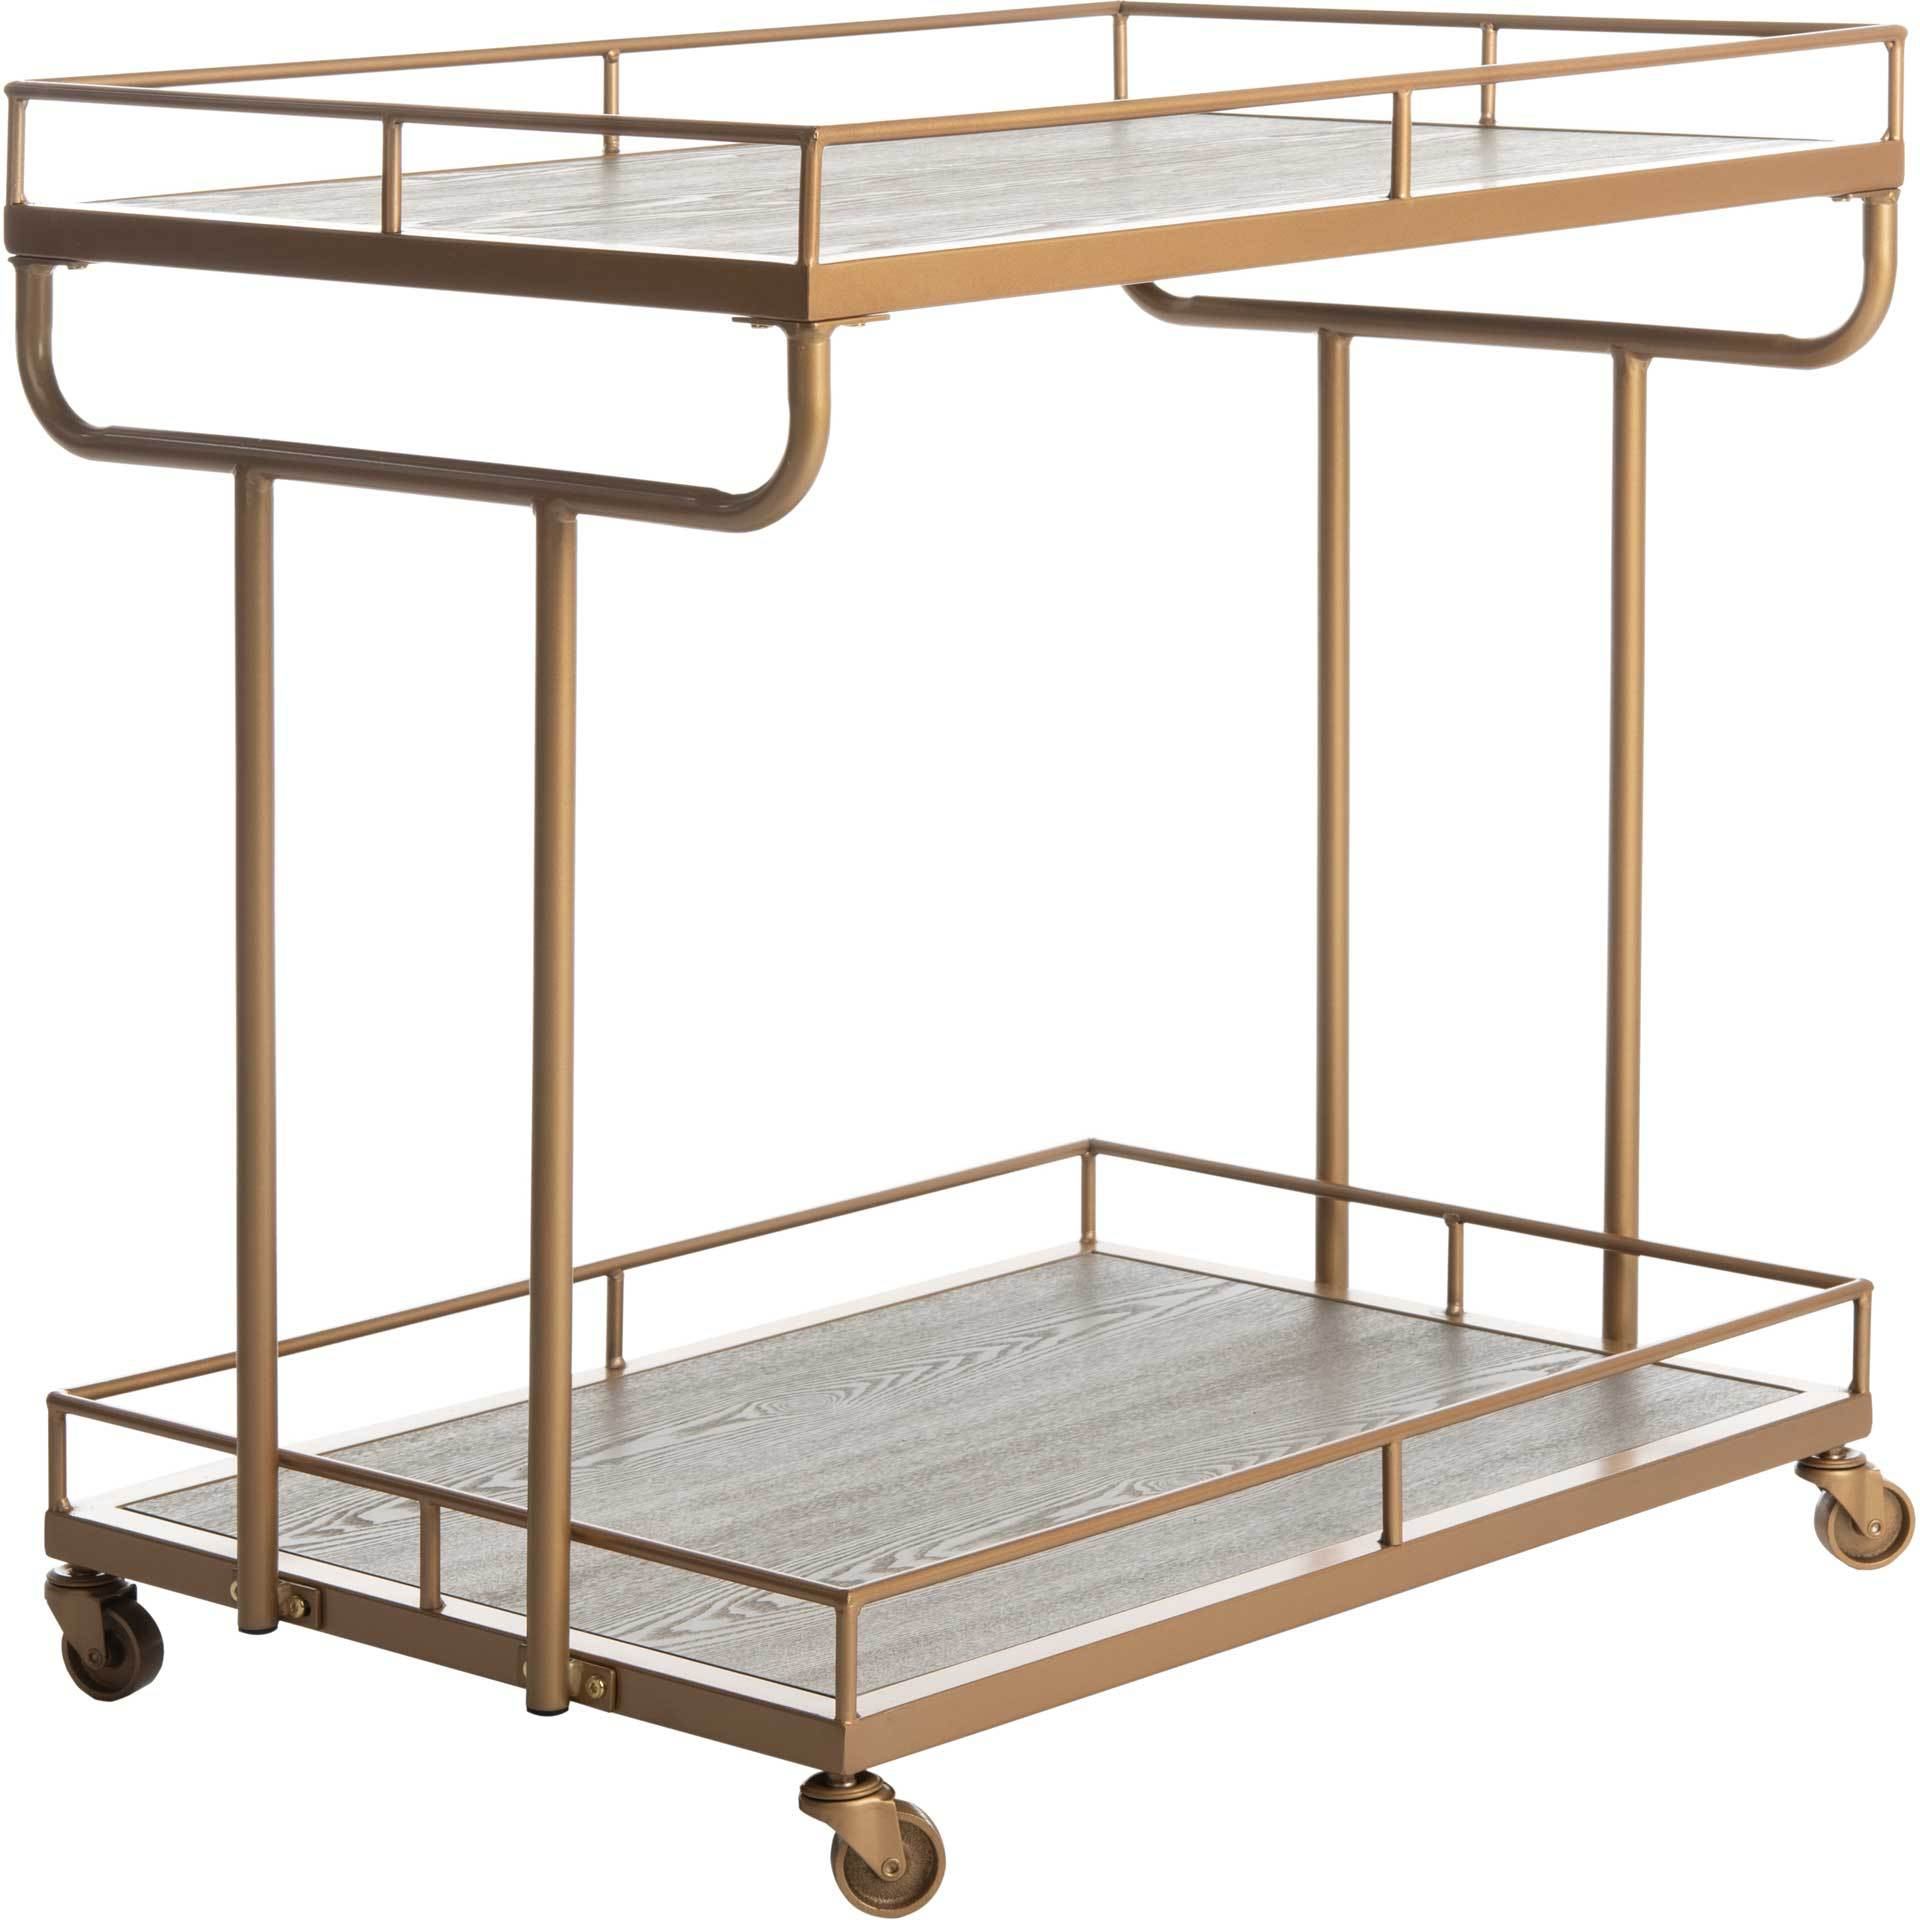 Damari 2 Tier Rectangle Bar Cart Rustic Oak/Gold